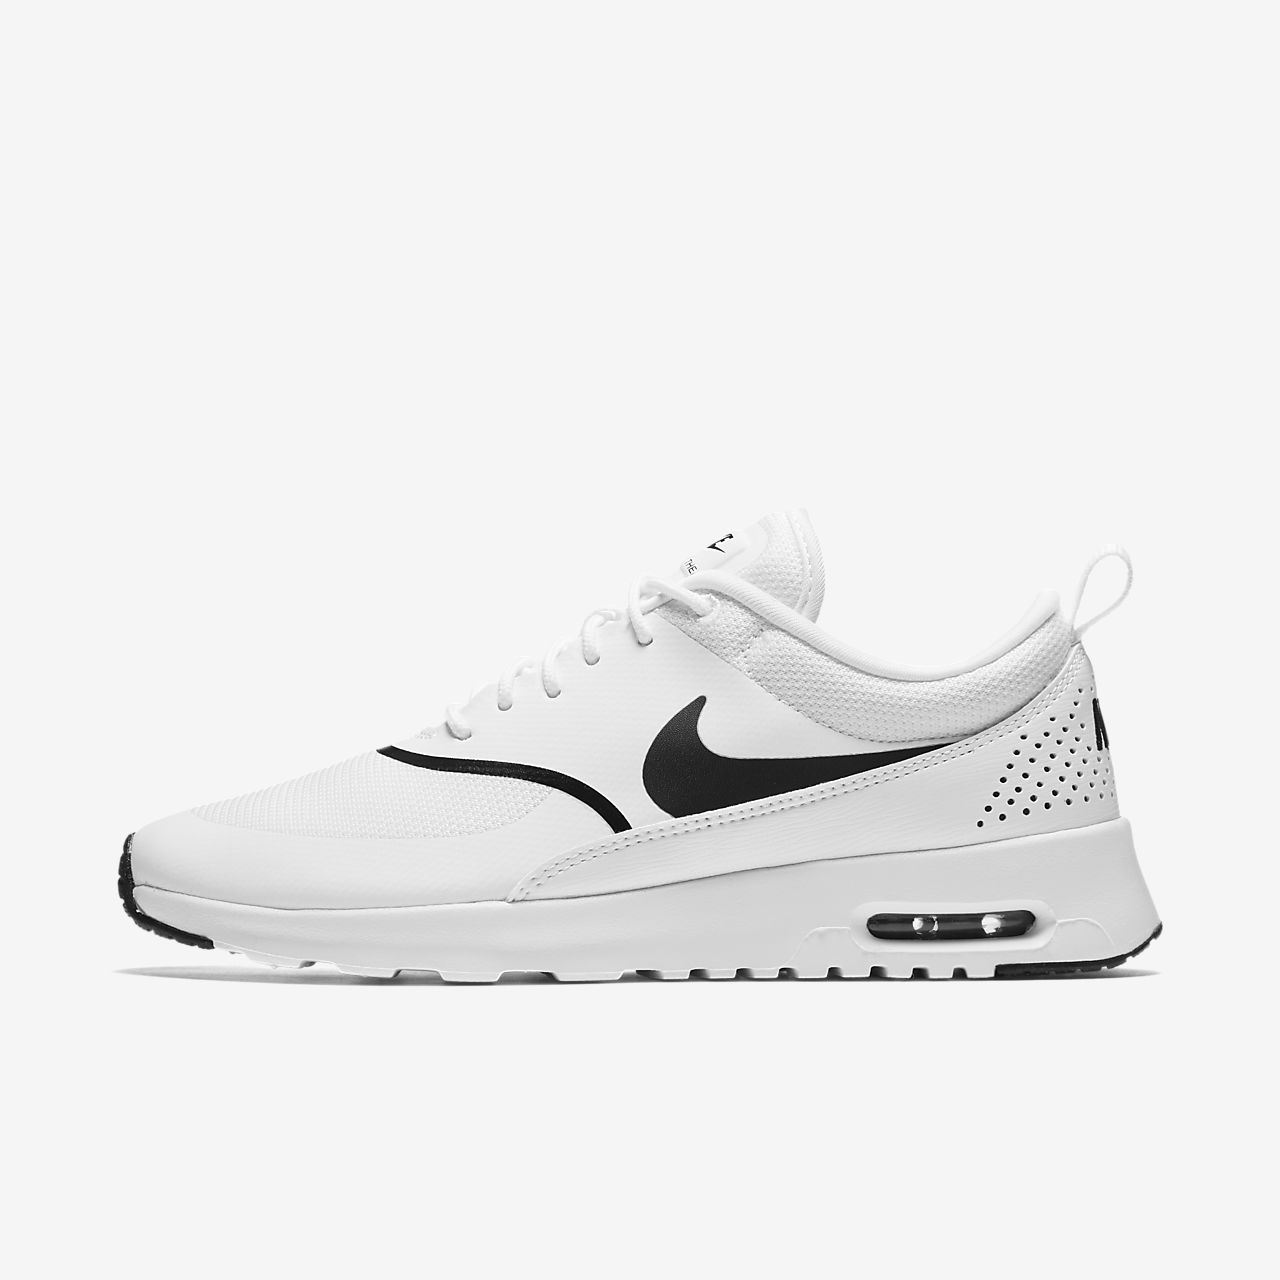 reputable site 3cfaf 698ad ... Nike Air Max Thea Women s Shoe